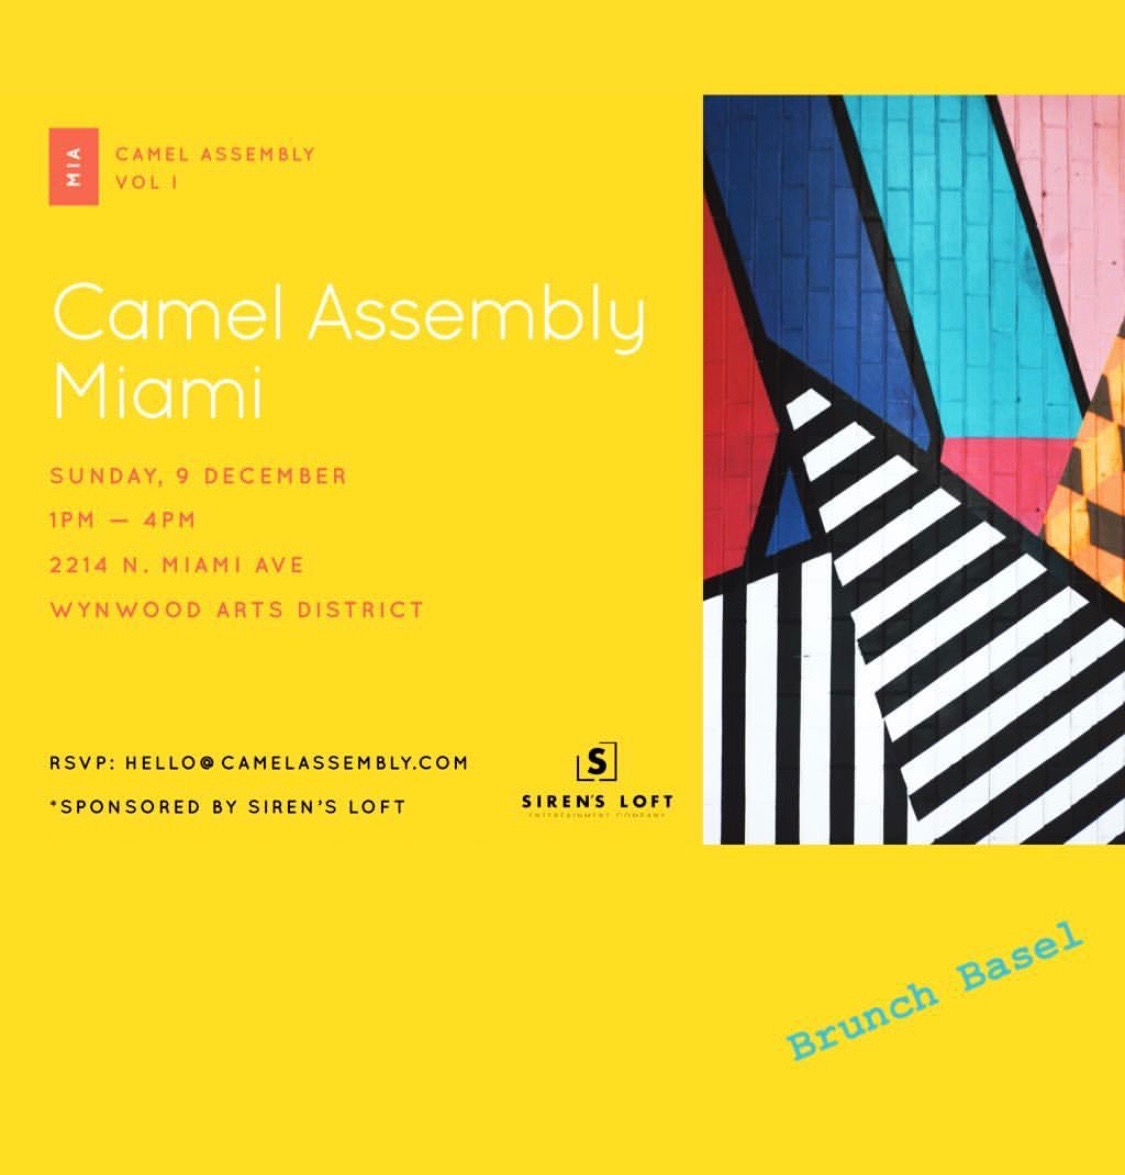 An international community of creative, female leaders focused on change. Read more about becoming a part of the Camel Assembly community  HERE .